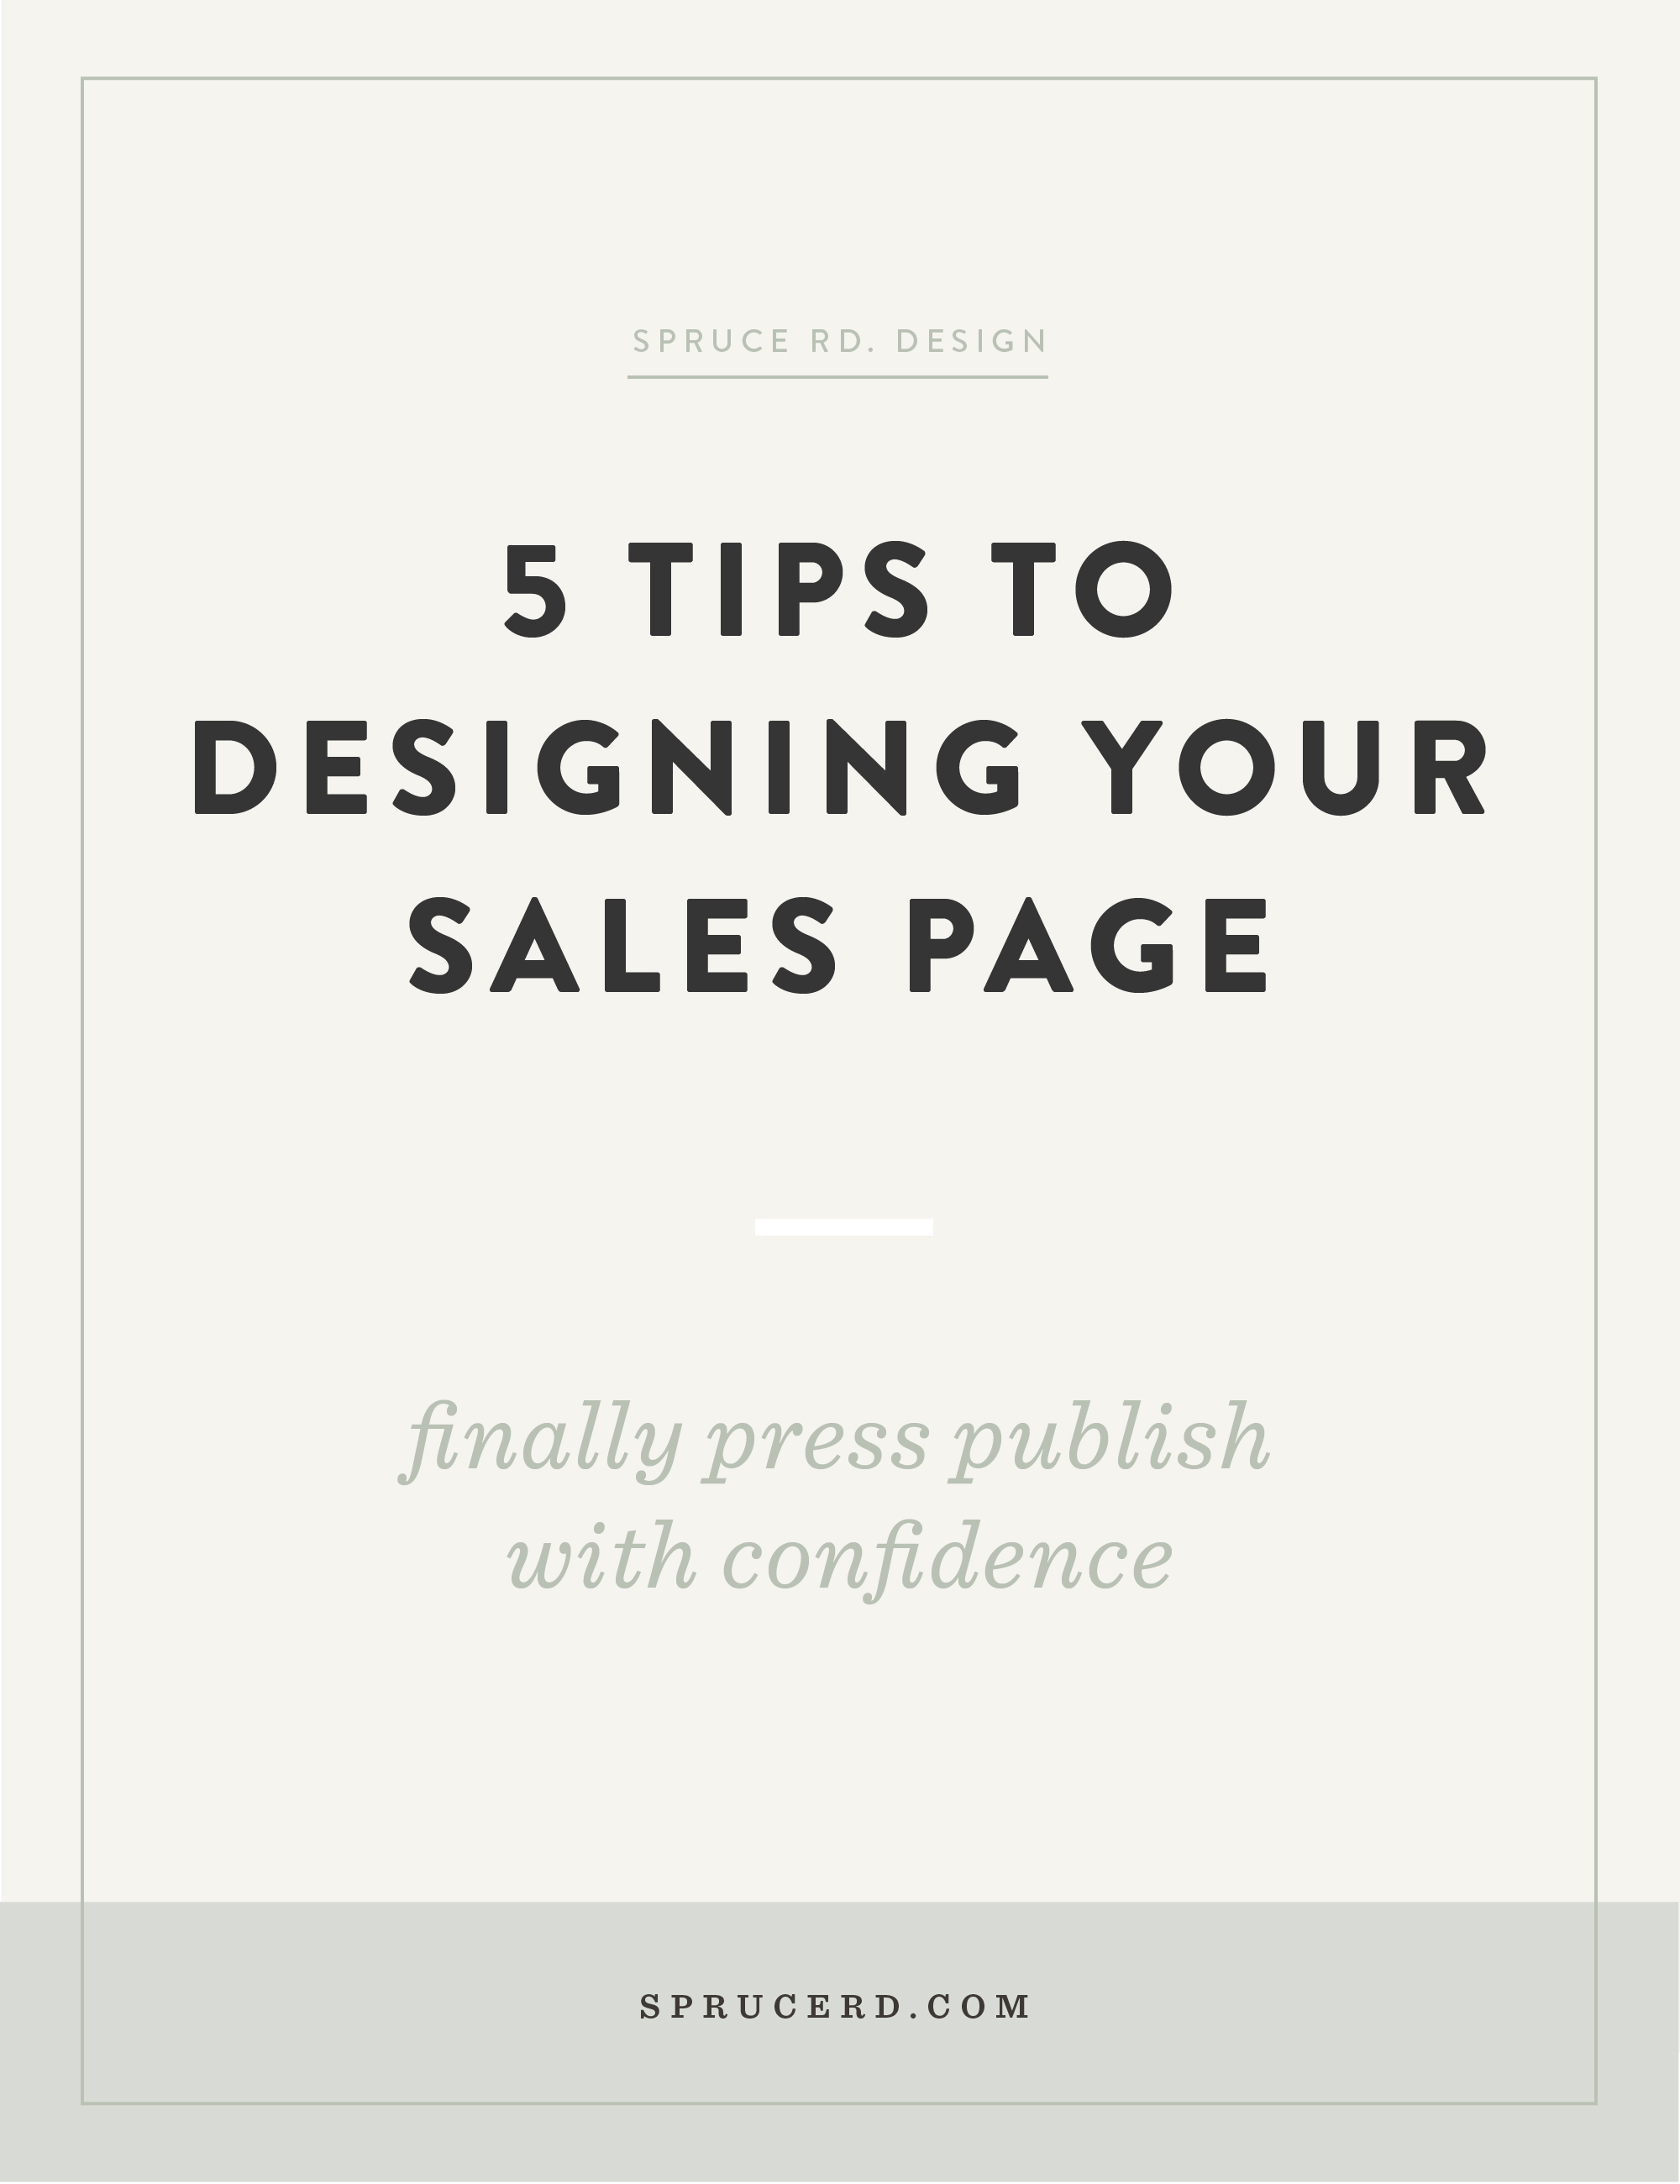 Ready to roll with your new launch? But just even the thought of pulling everything together brings you stress-sweat? Here's a few tips on designing your sales page, so you can rest easy.